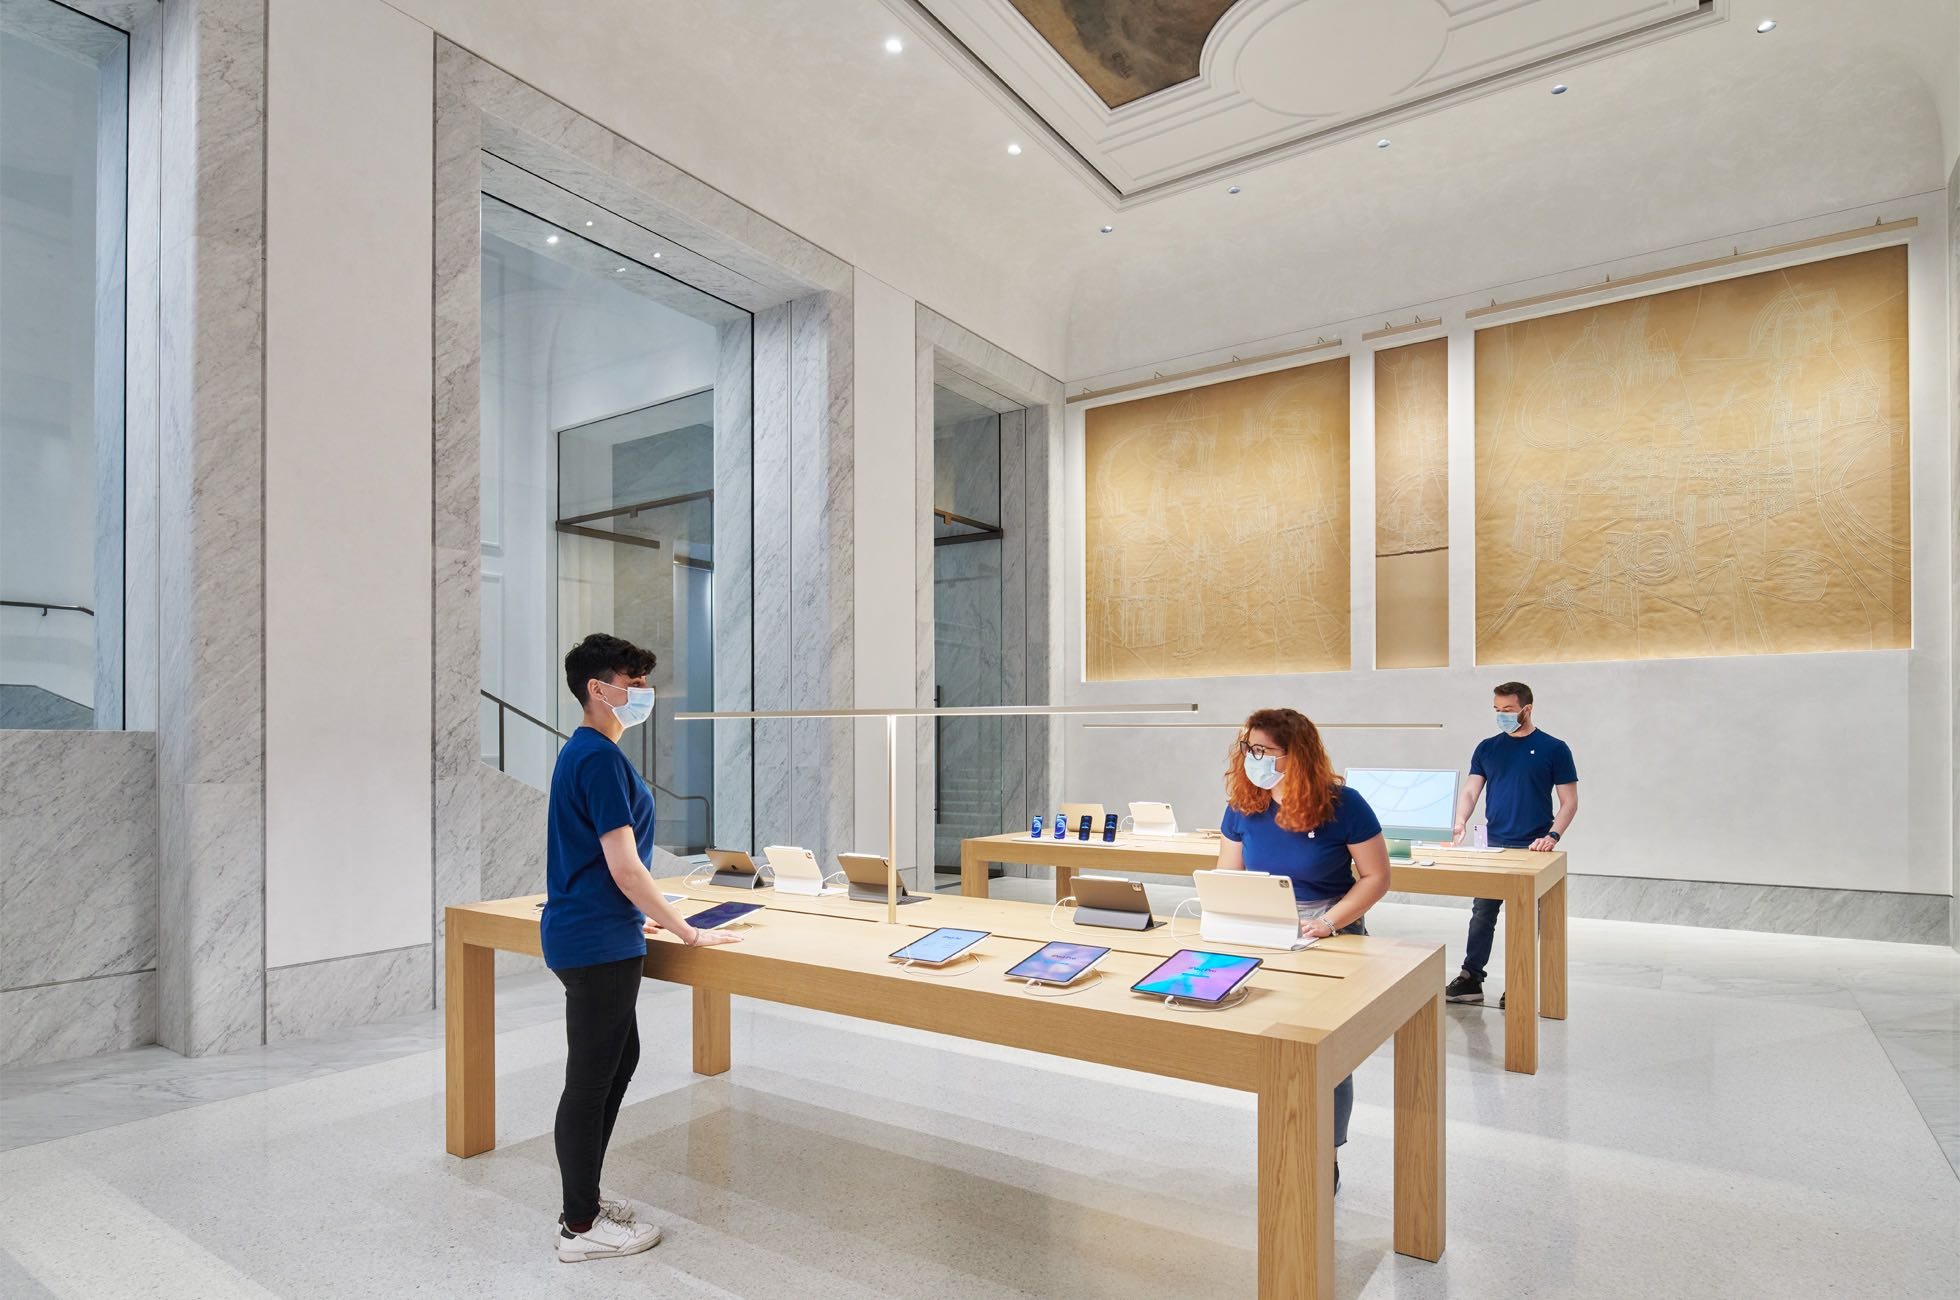 A photograph showing the interior of Apple's retail store on Rome's Via del Corso